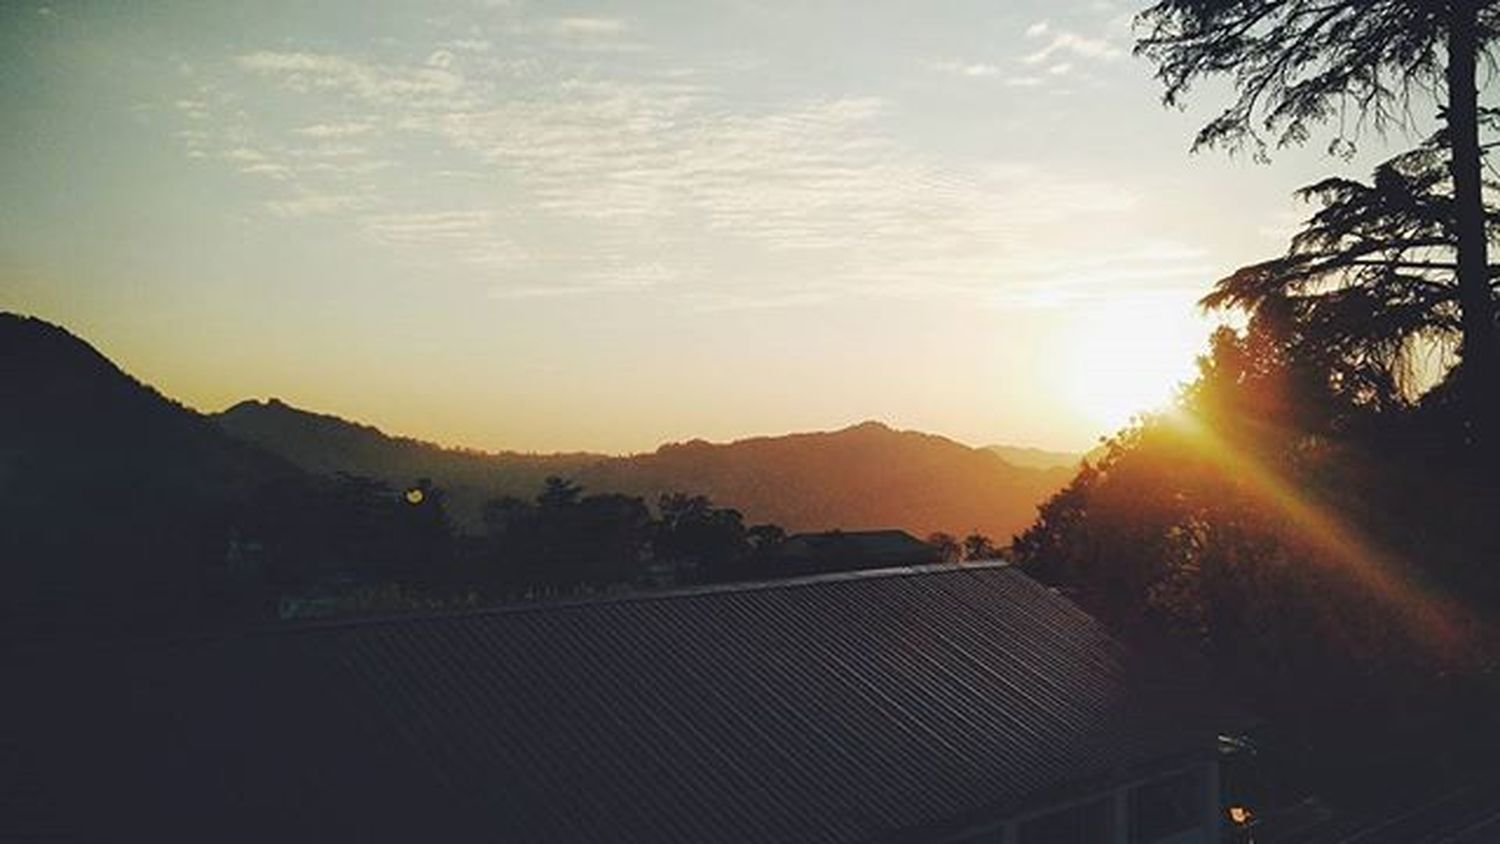 Picoverload Mussorie Lbsnaa Oneplus2 Sunset Hills Sky Landscape